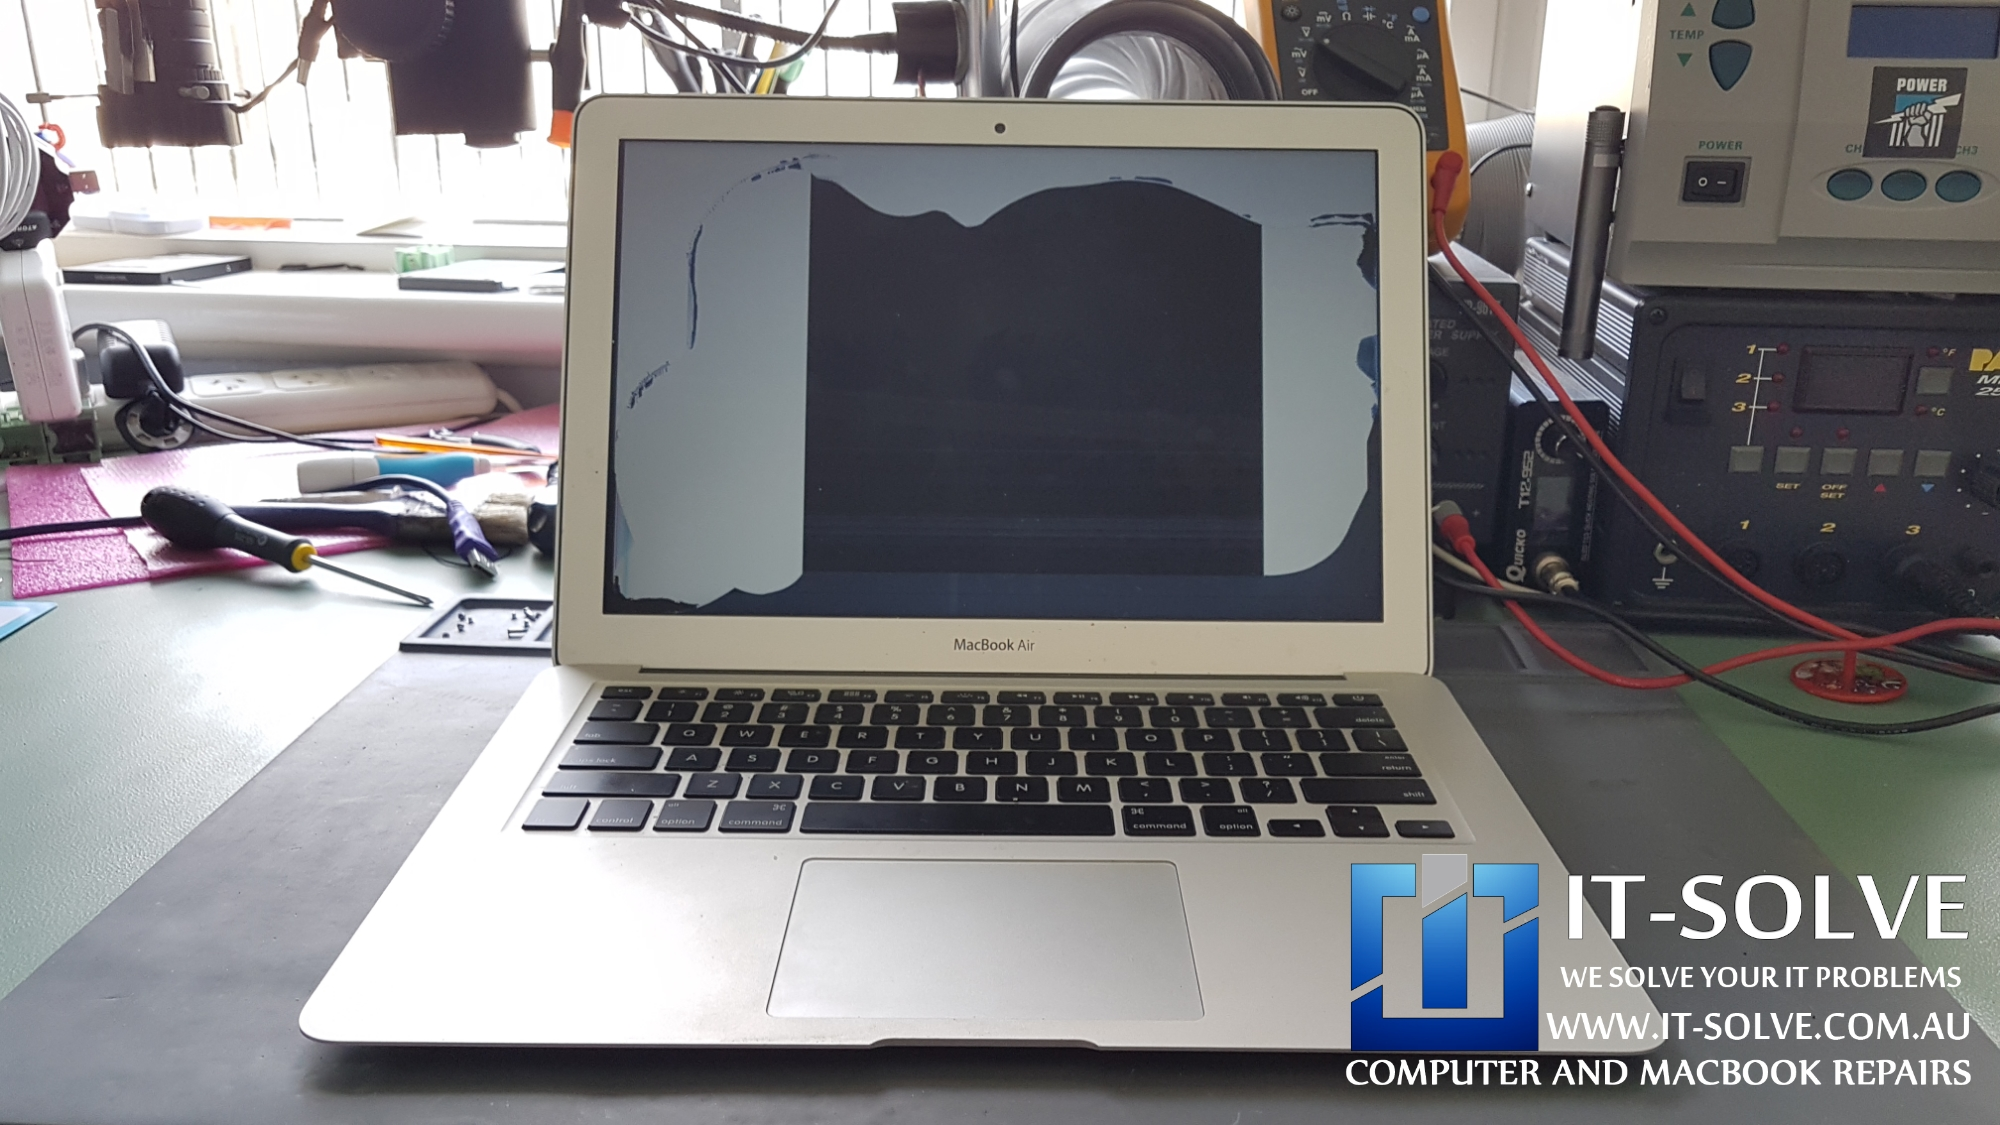 Macbook Air A1466 with a Broken Screen